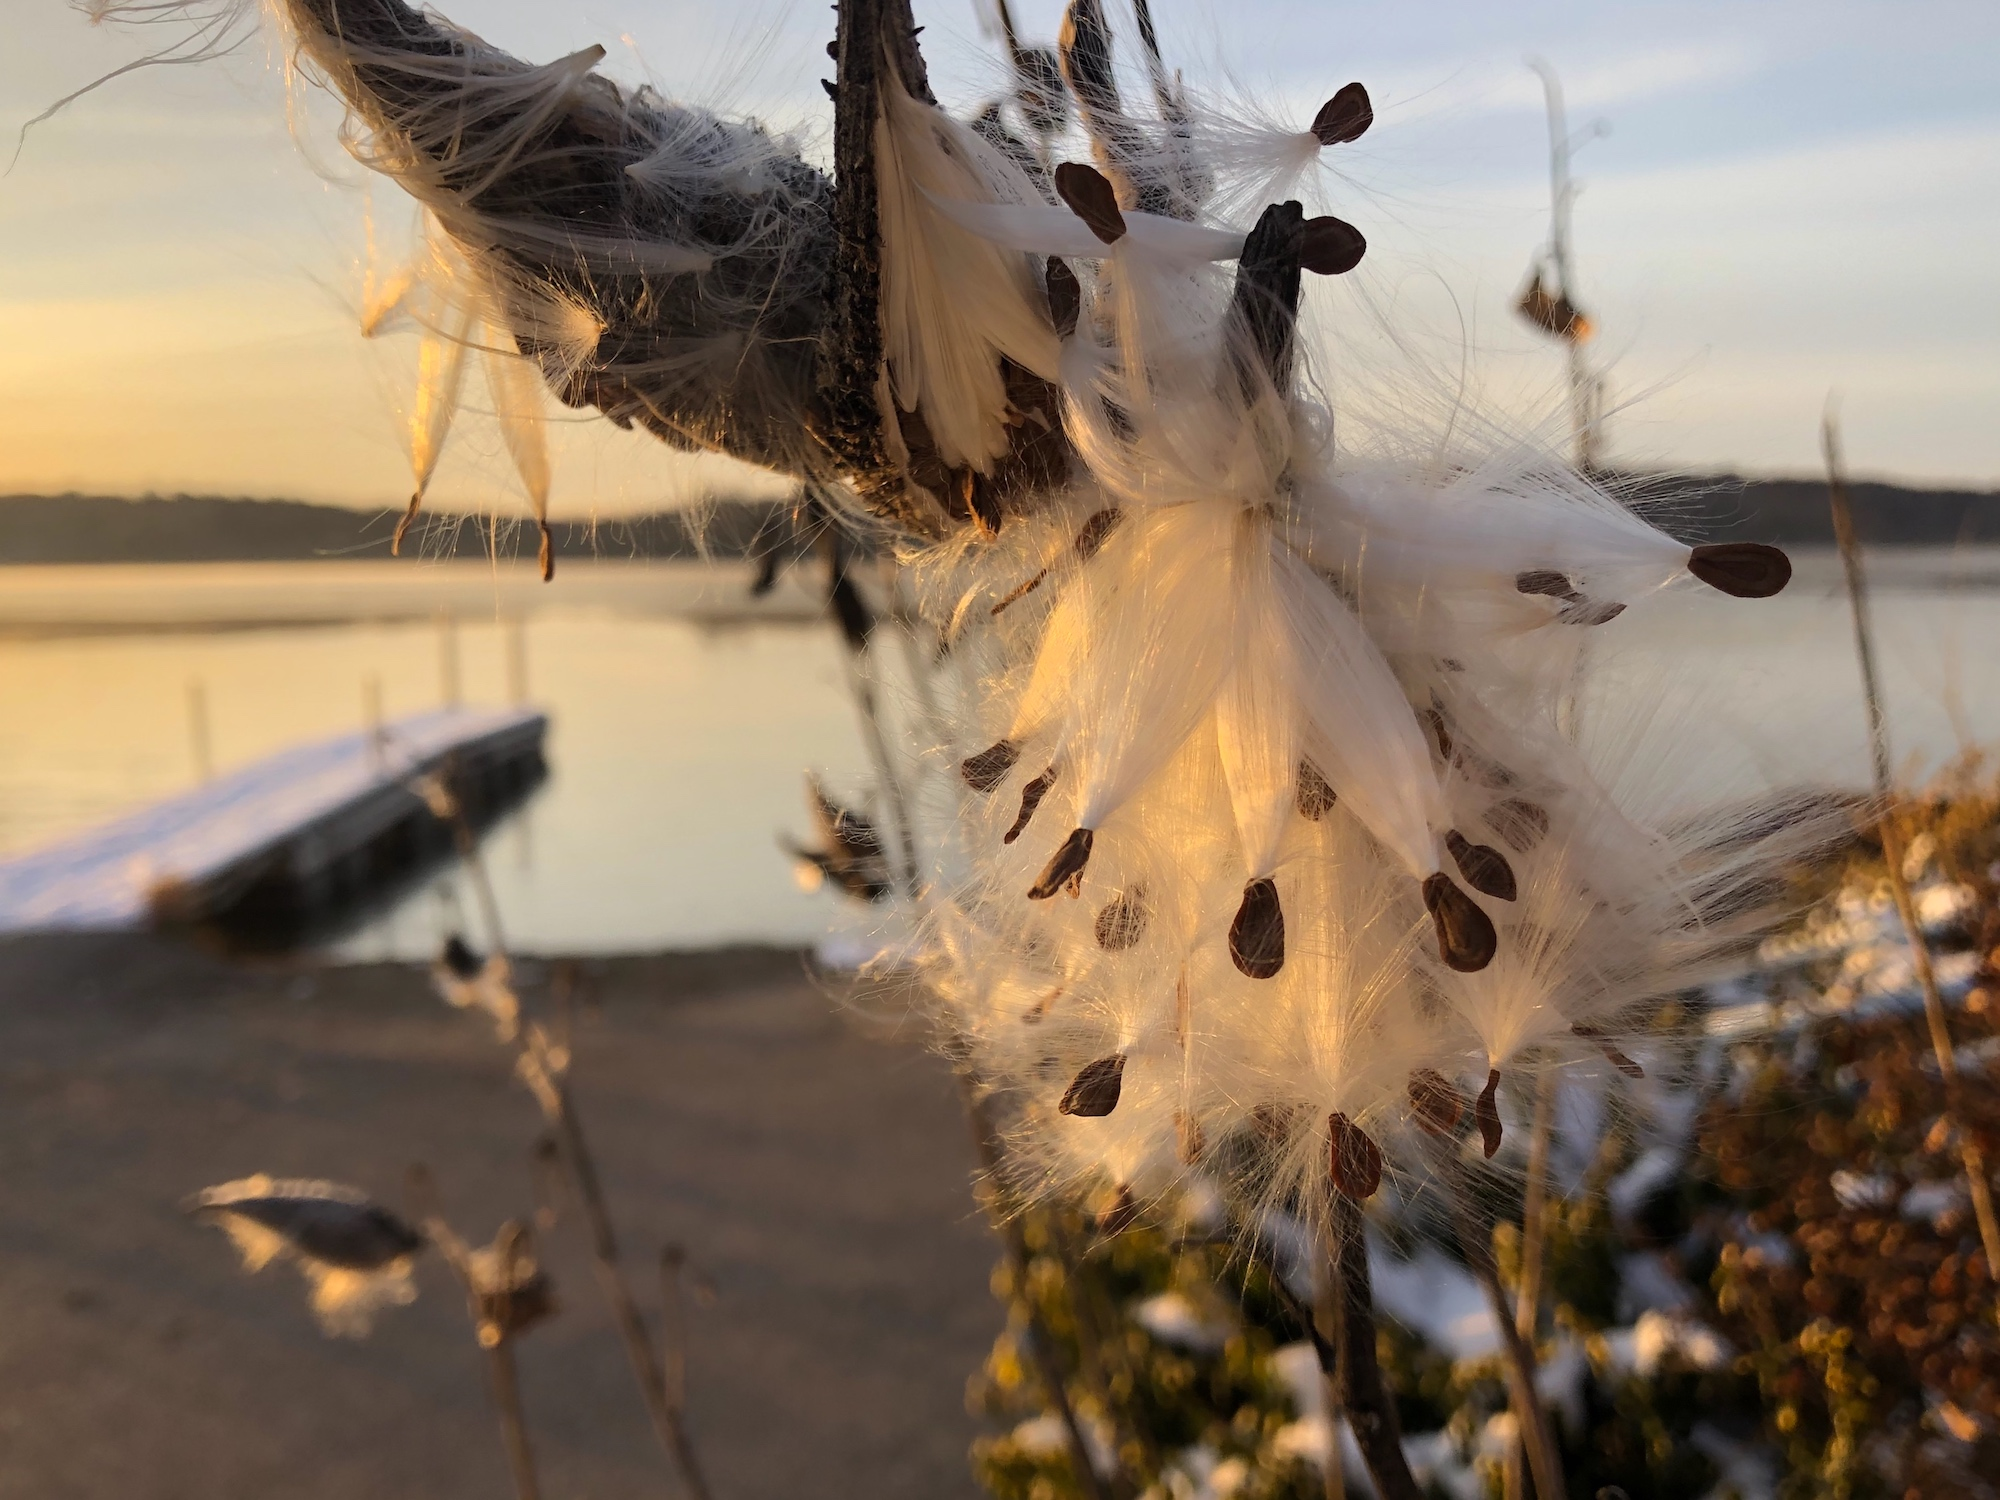 Common Milkweed by Wingra Boats on November 8, 2019.